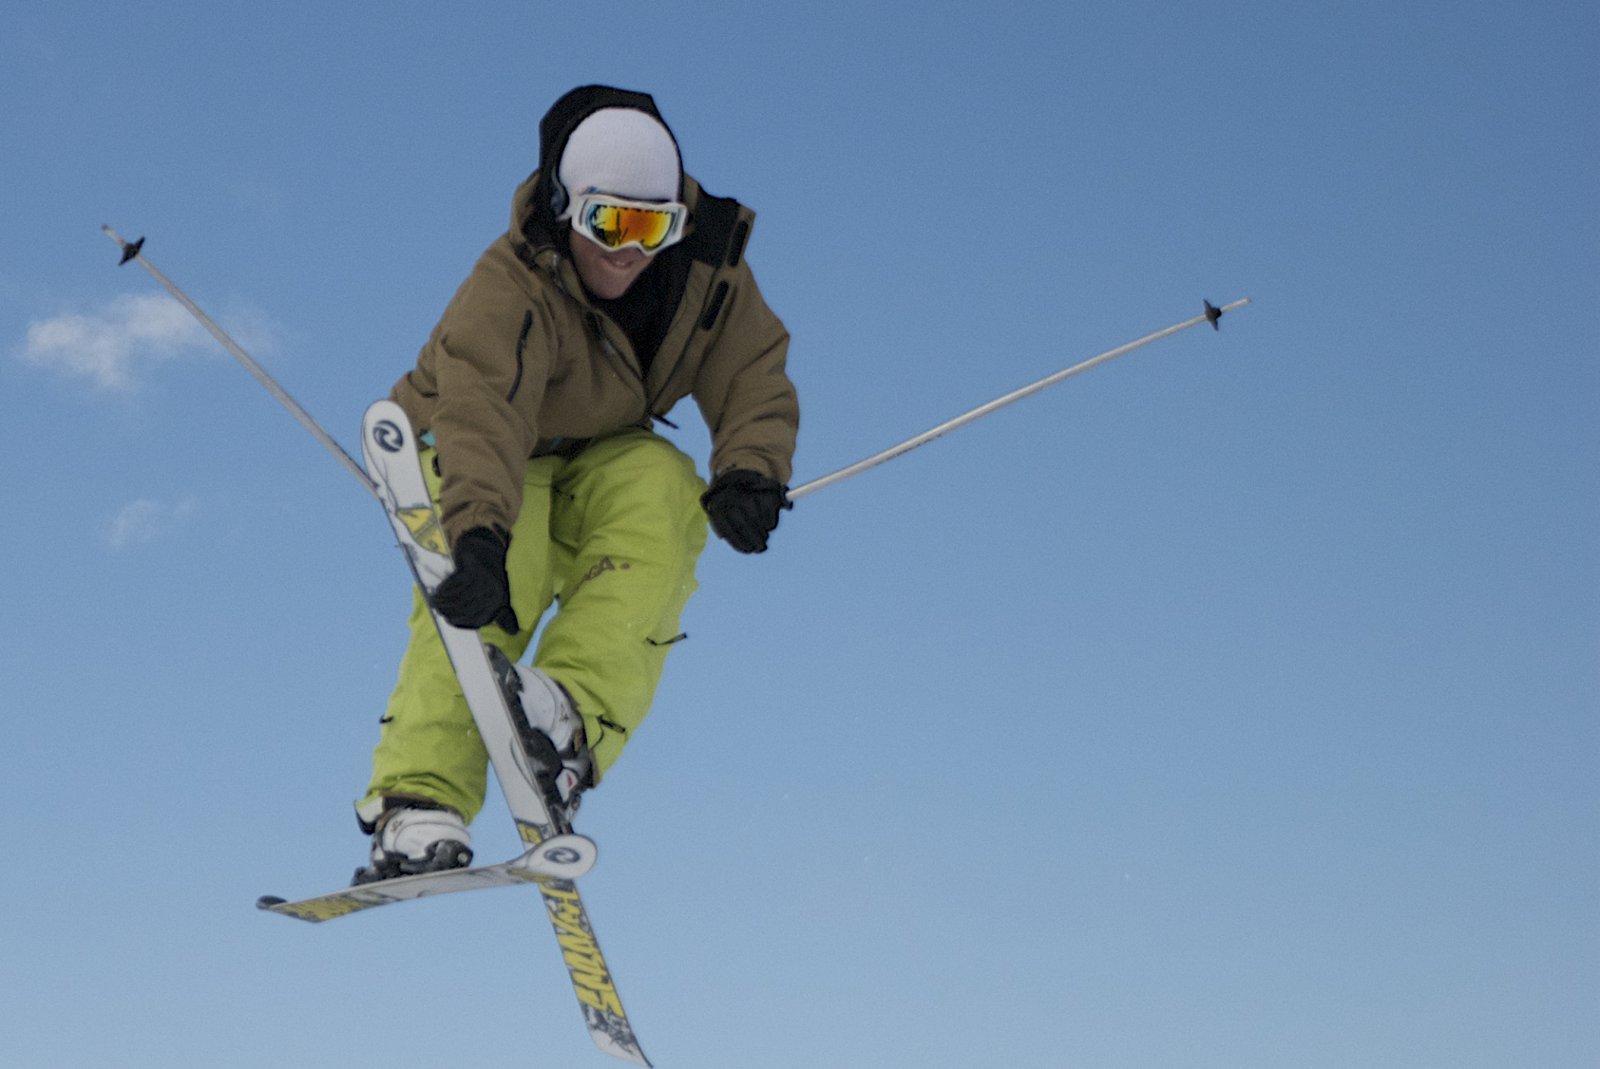 Right before i pulled my ski off